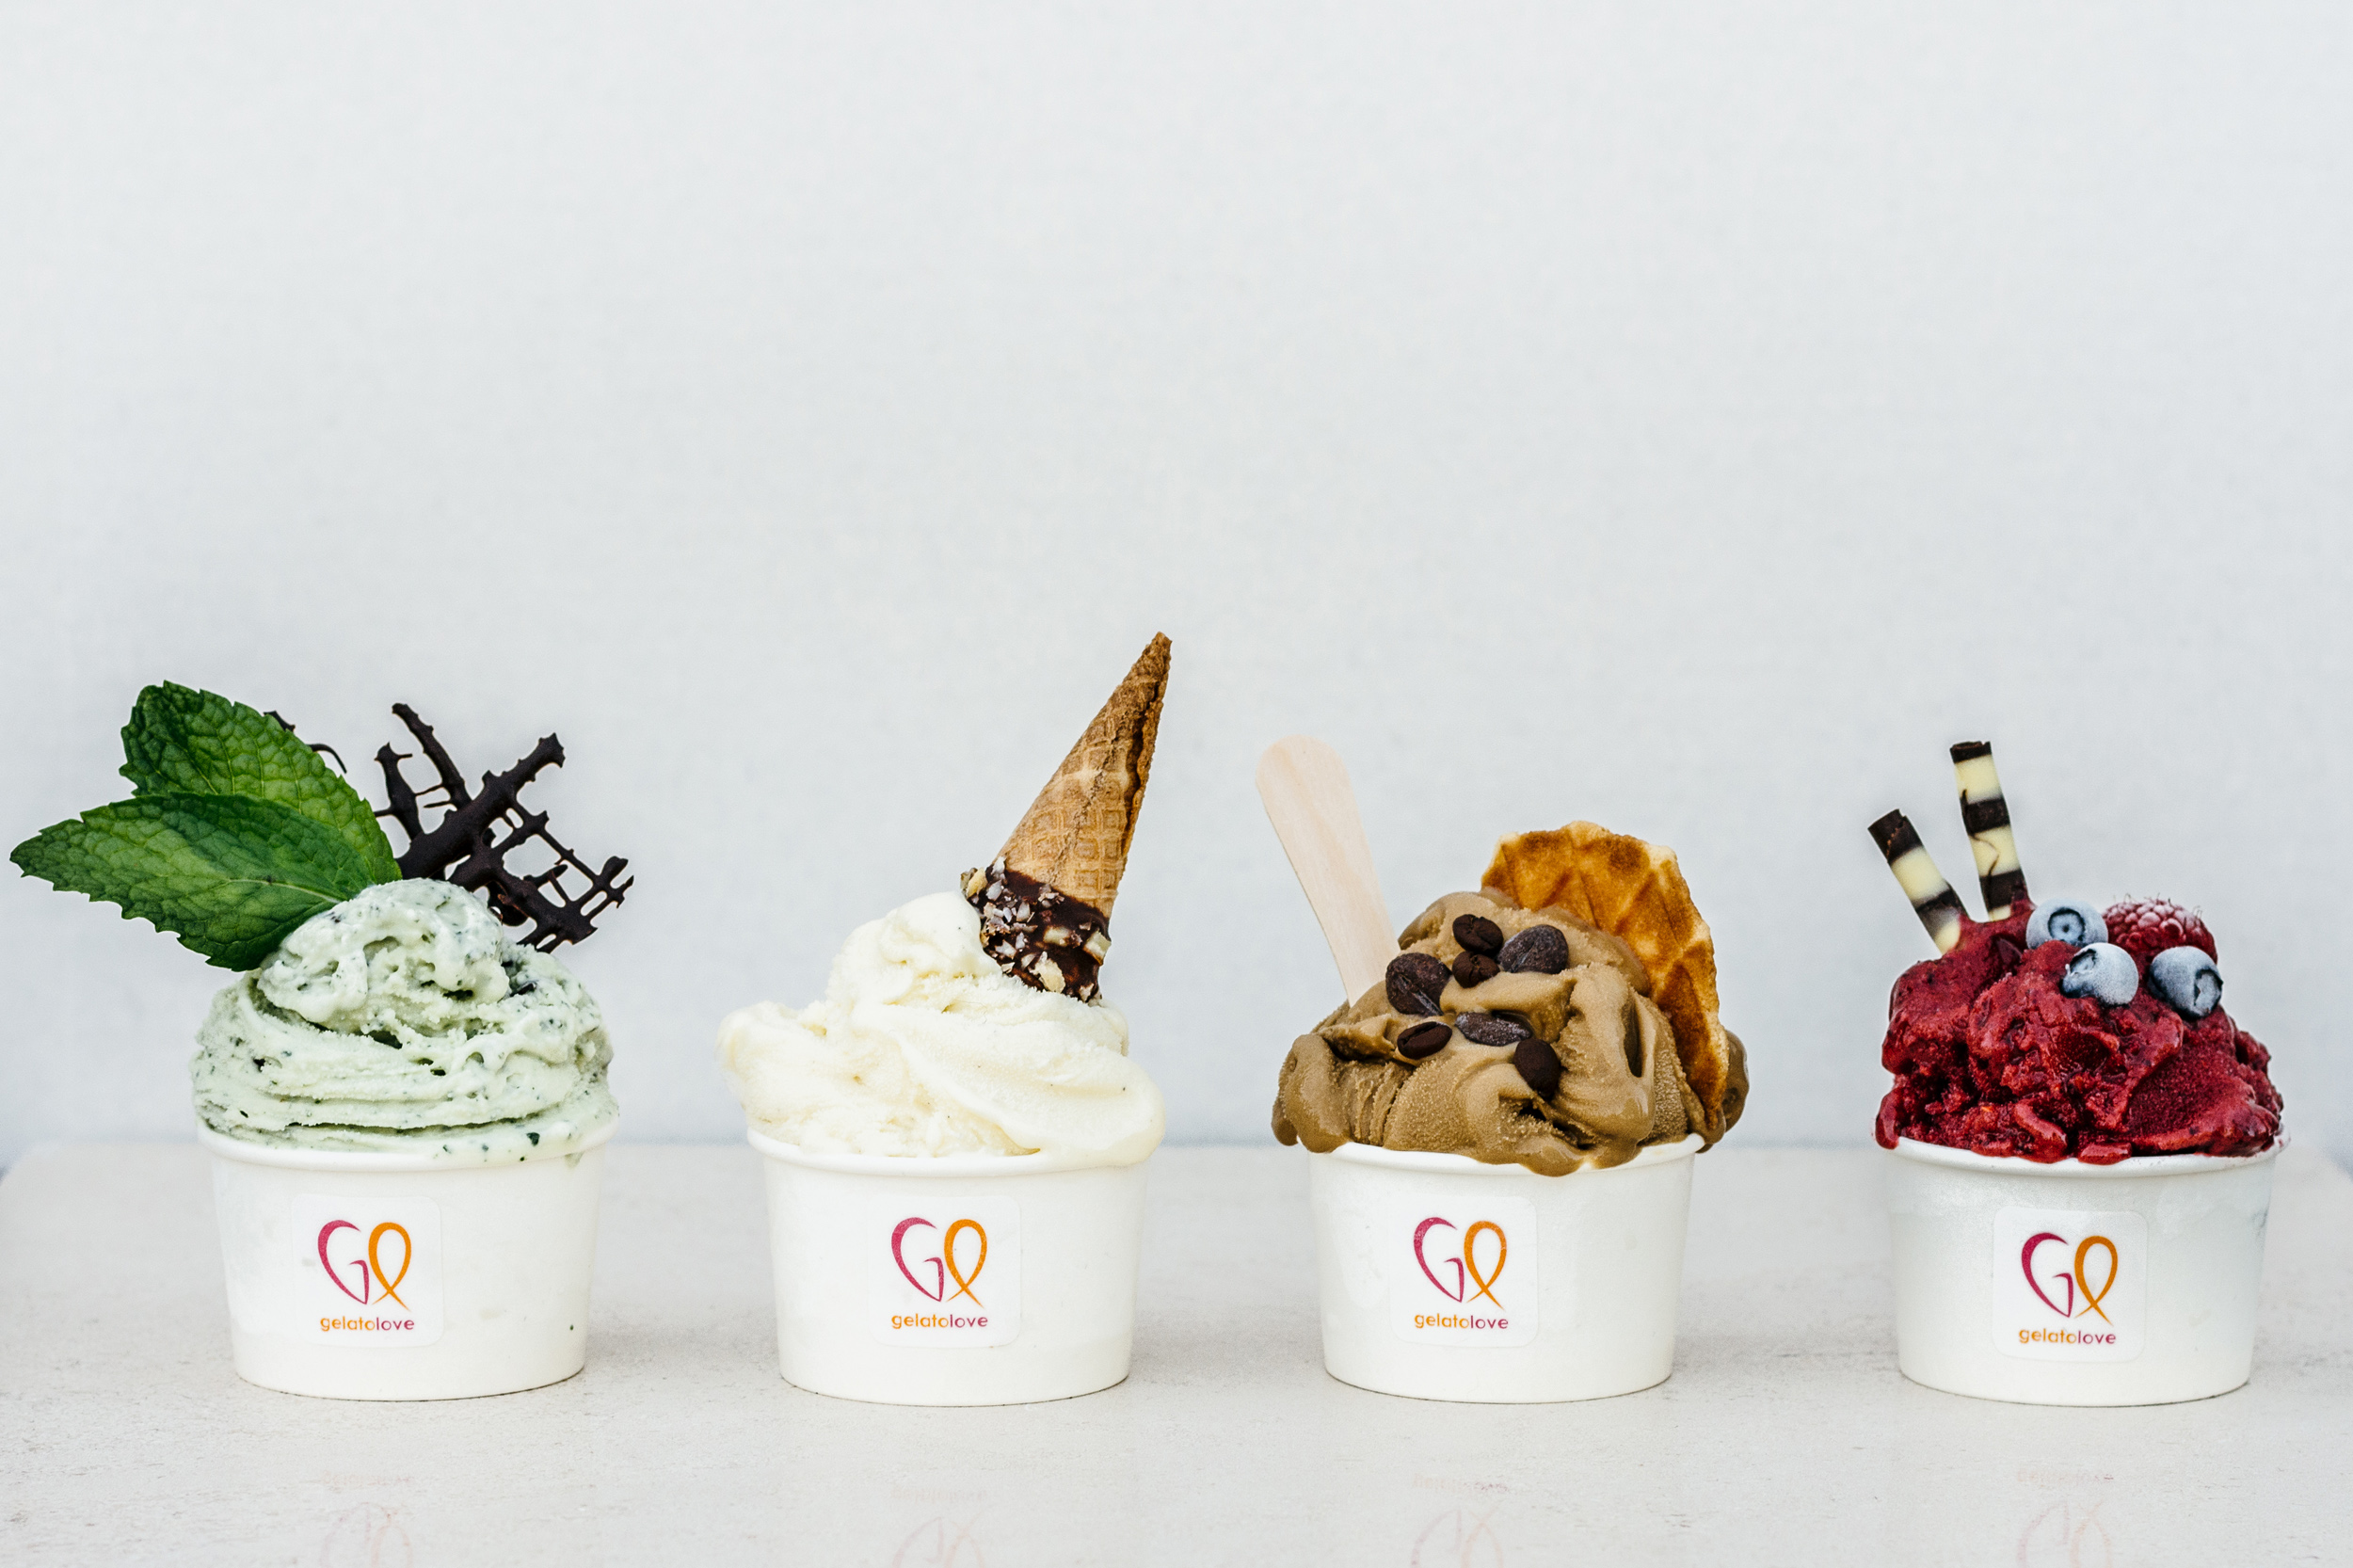 Four cups of assorted gelato from Gelato Love